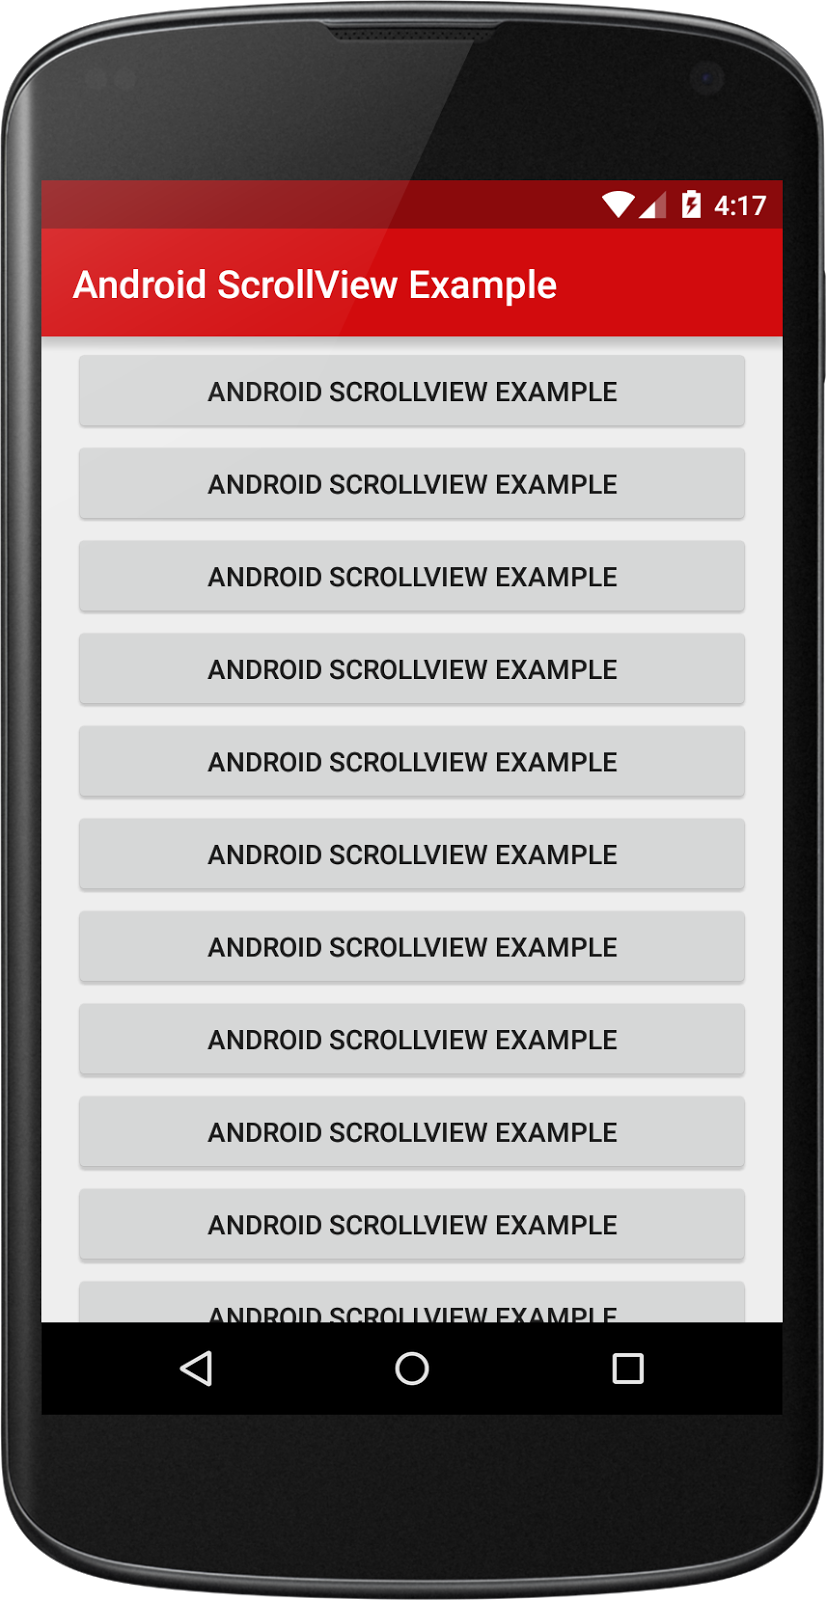 Android ScrollView Example